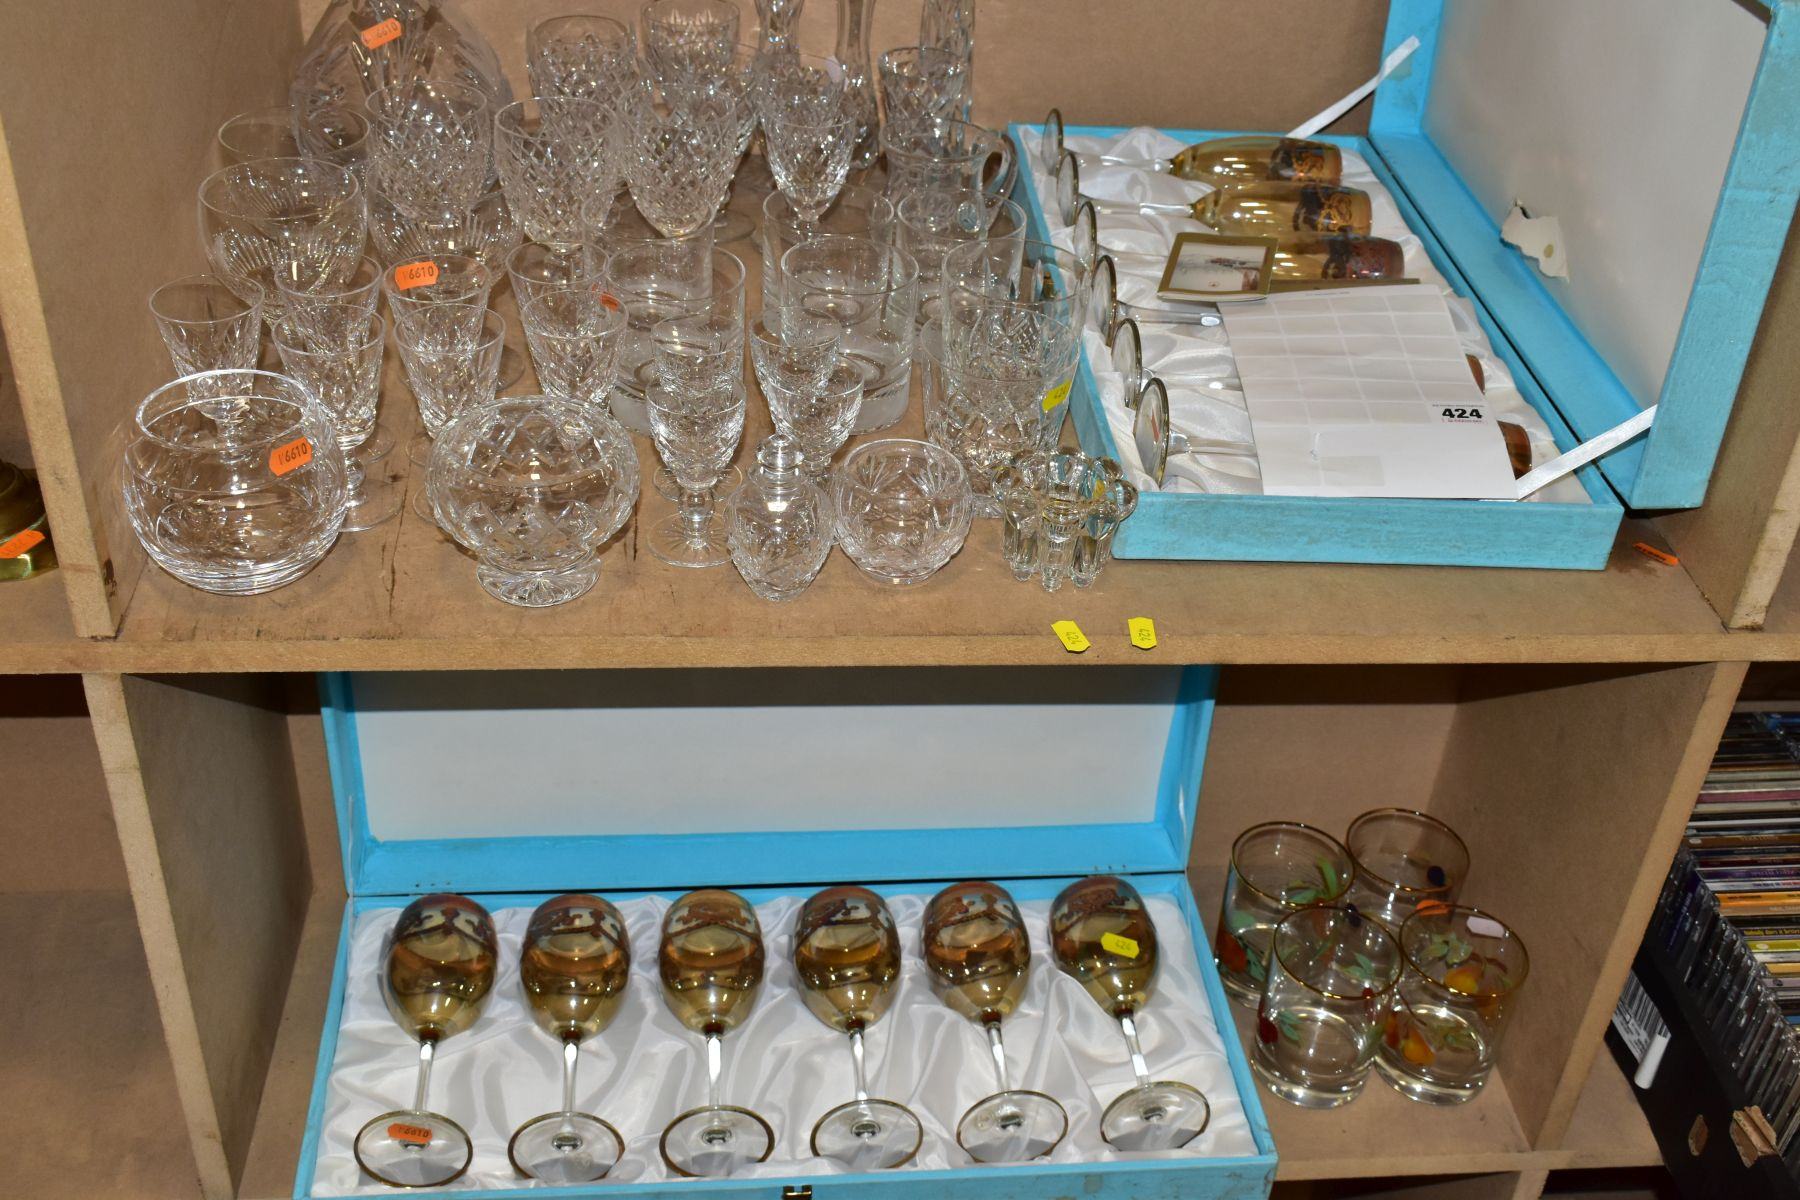 A GROUP OF GLASSWARE, including a boxed set of six Crystallera F.lli Fumo wine glasses, one set